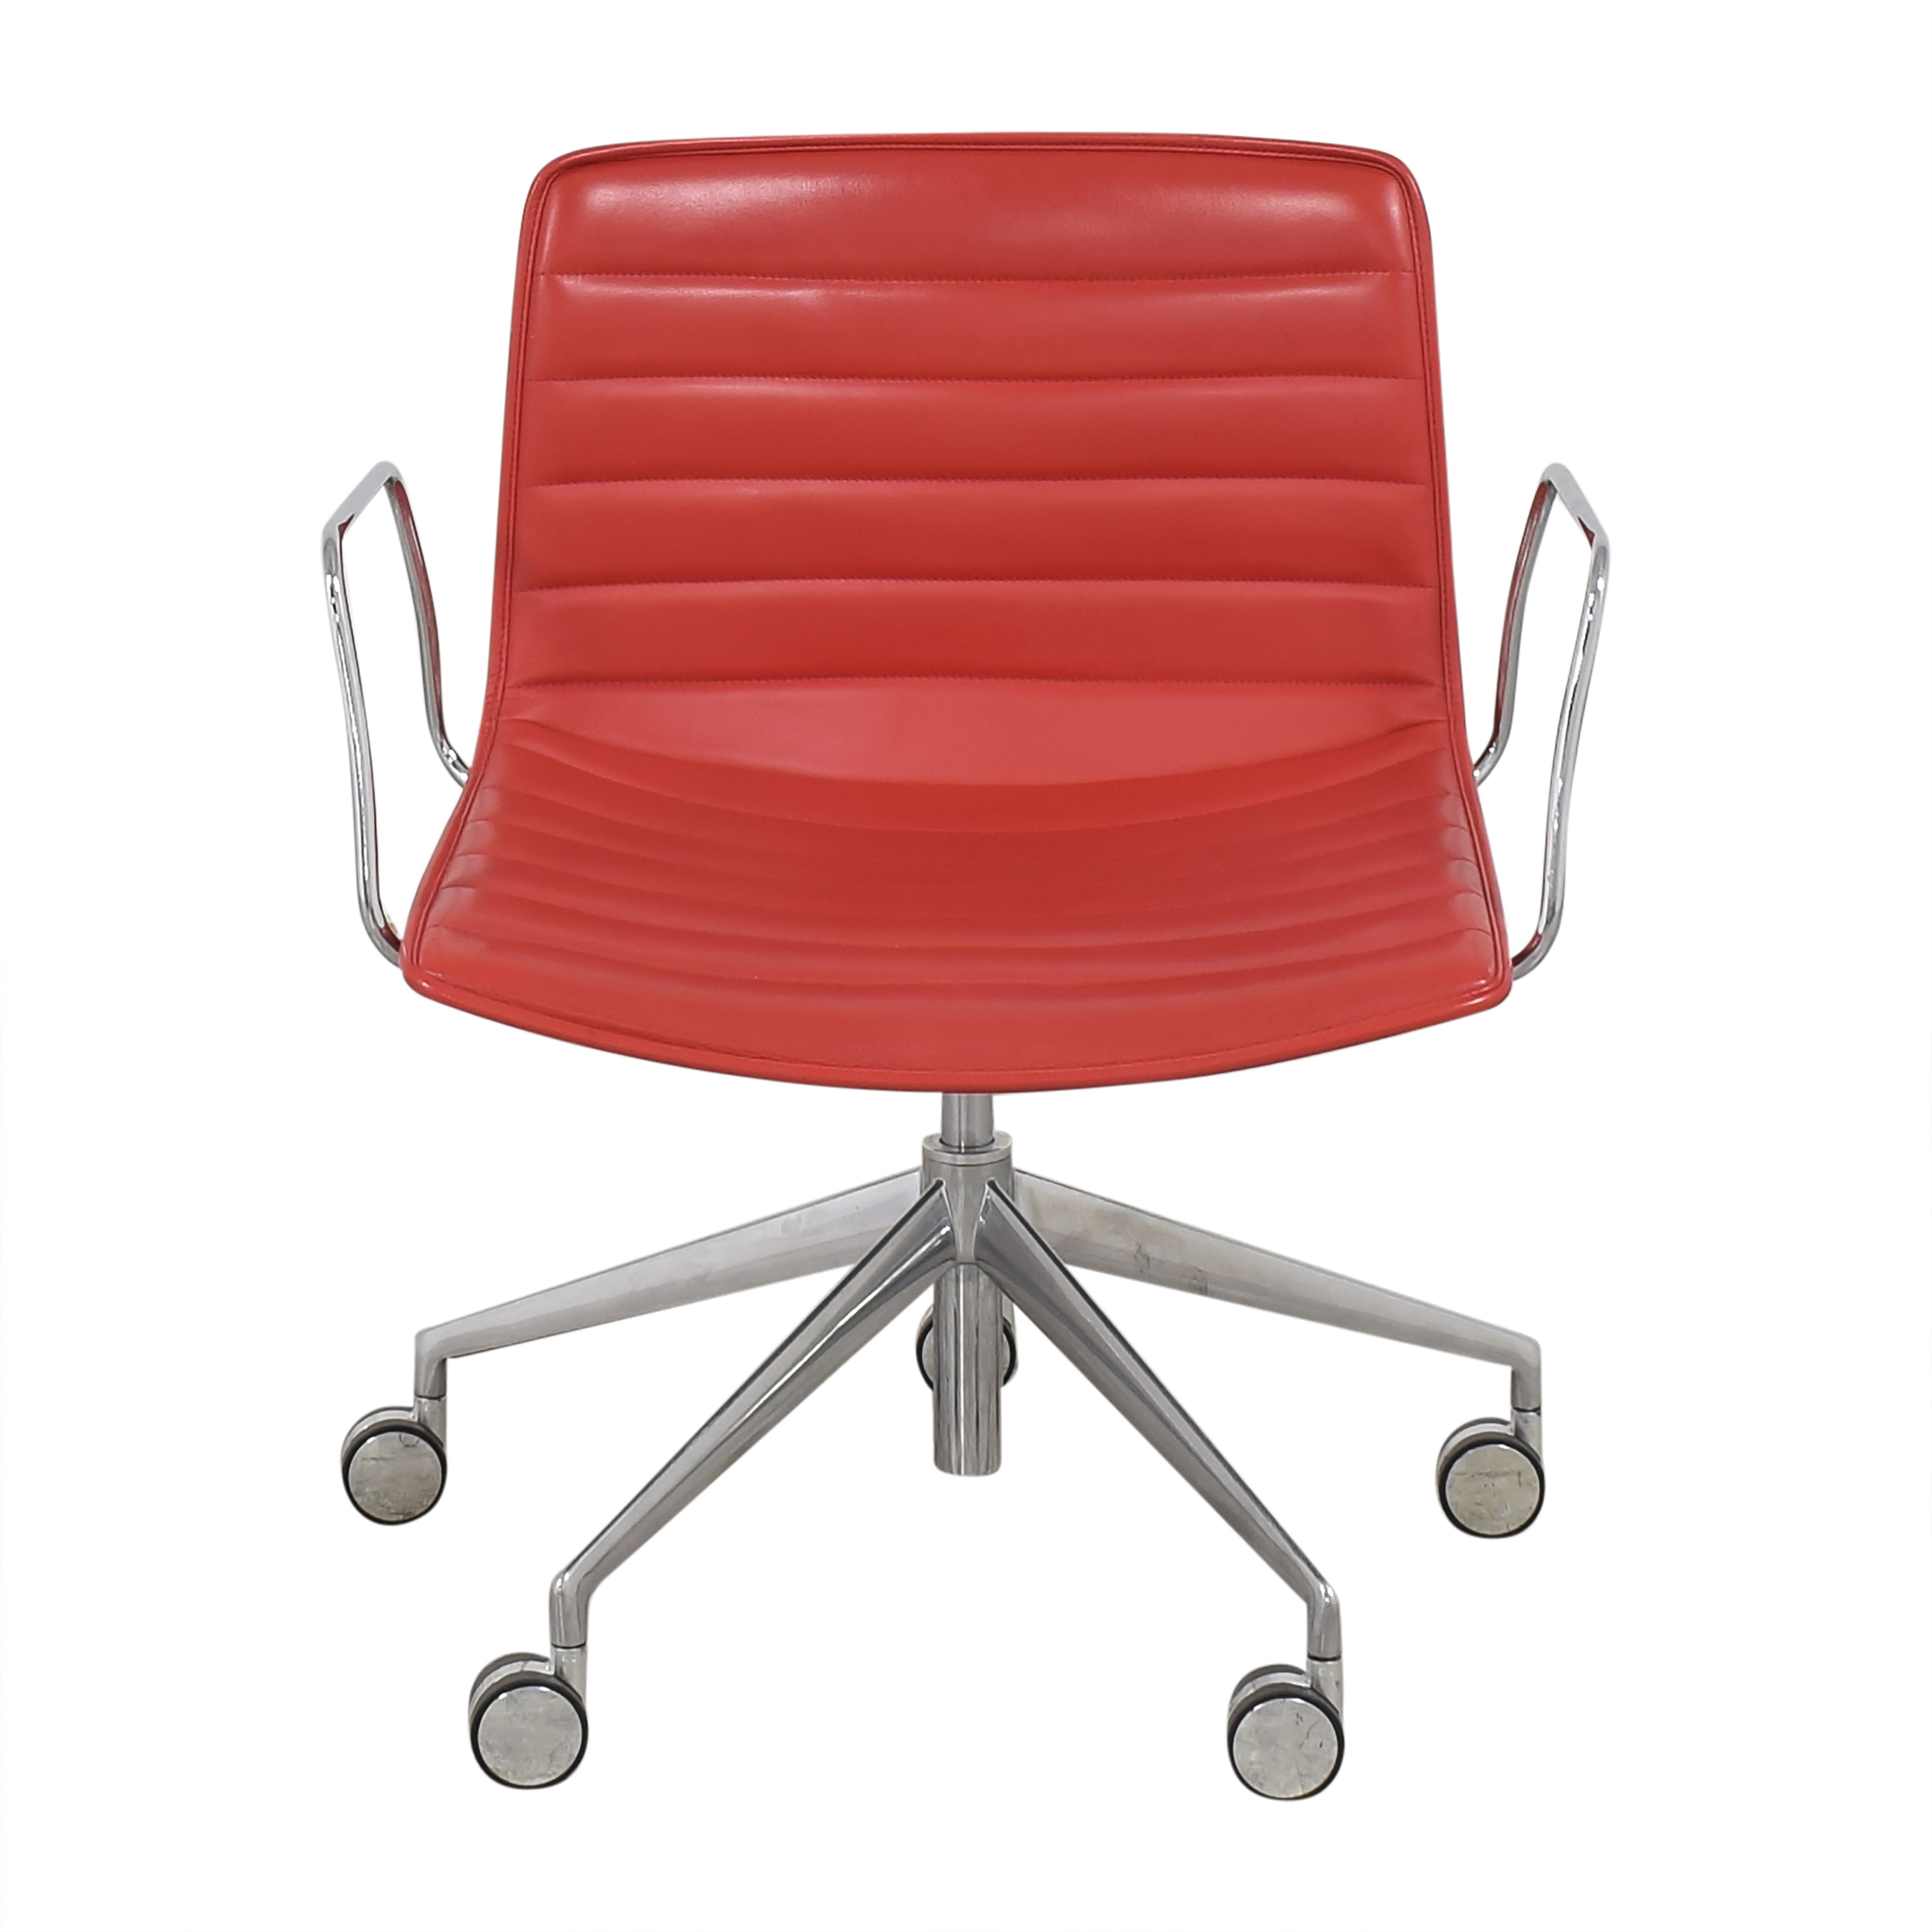 Gordon International Gordon International Catifa Arm Chair red and silver